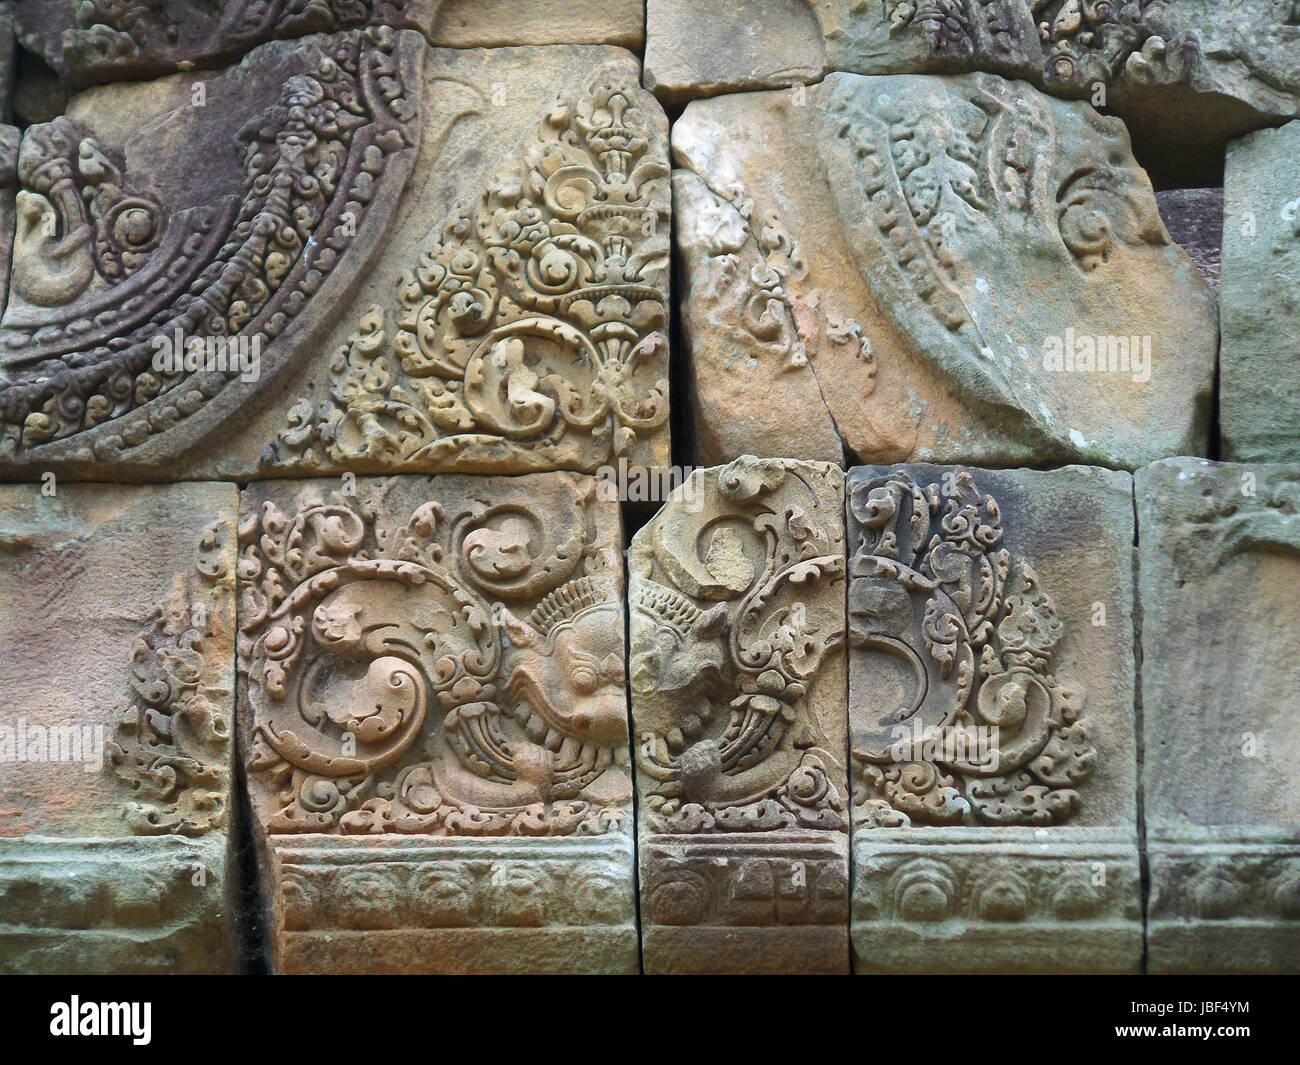 Gorgeous relief on the pediment of Prasat Hin Muang Tam, the ancient temple complex in Buriram, Thailand - Stock Image